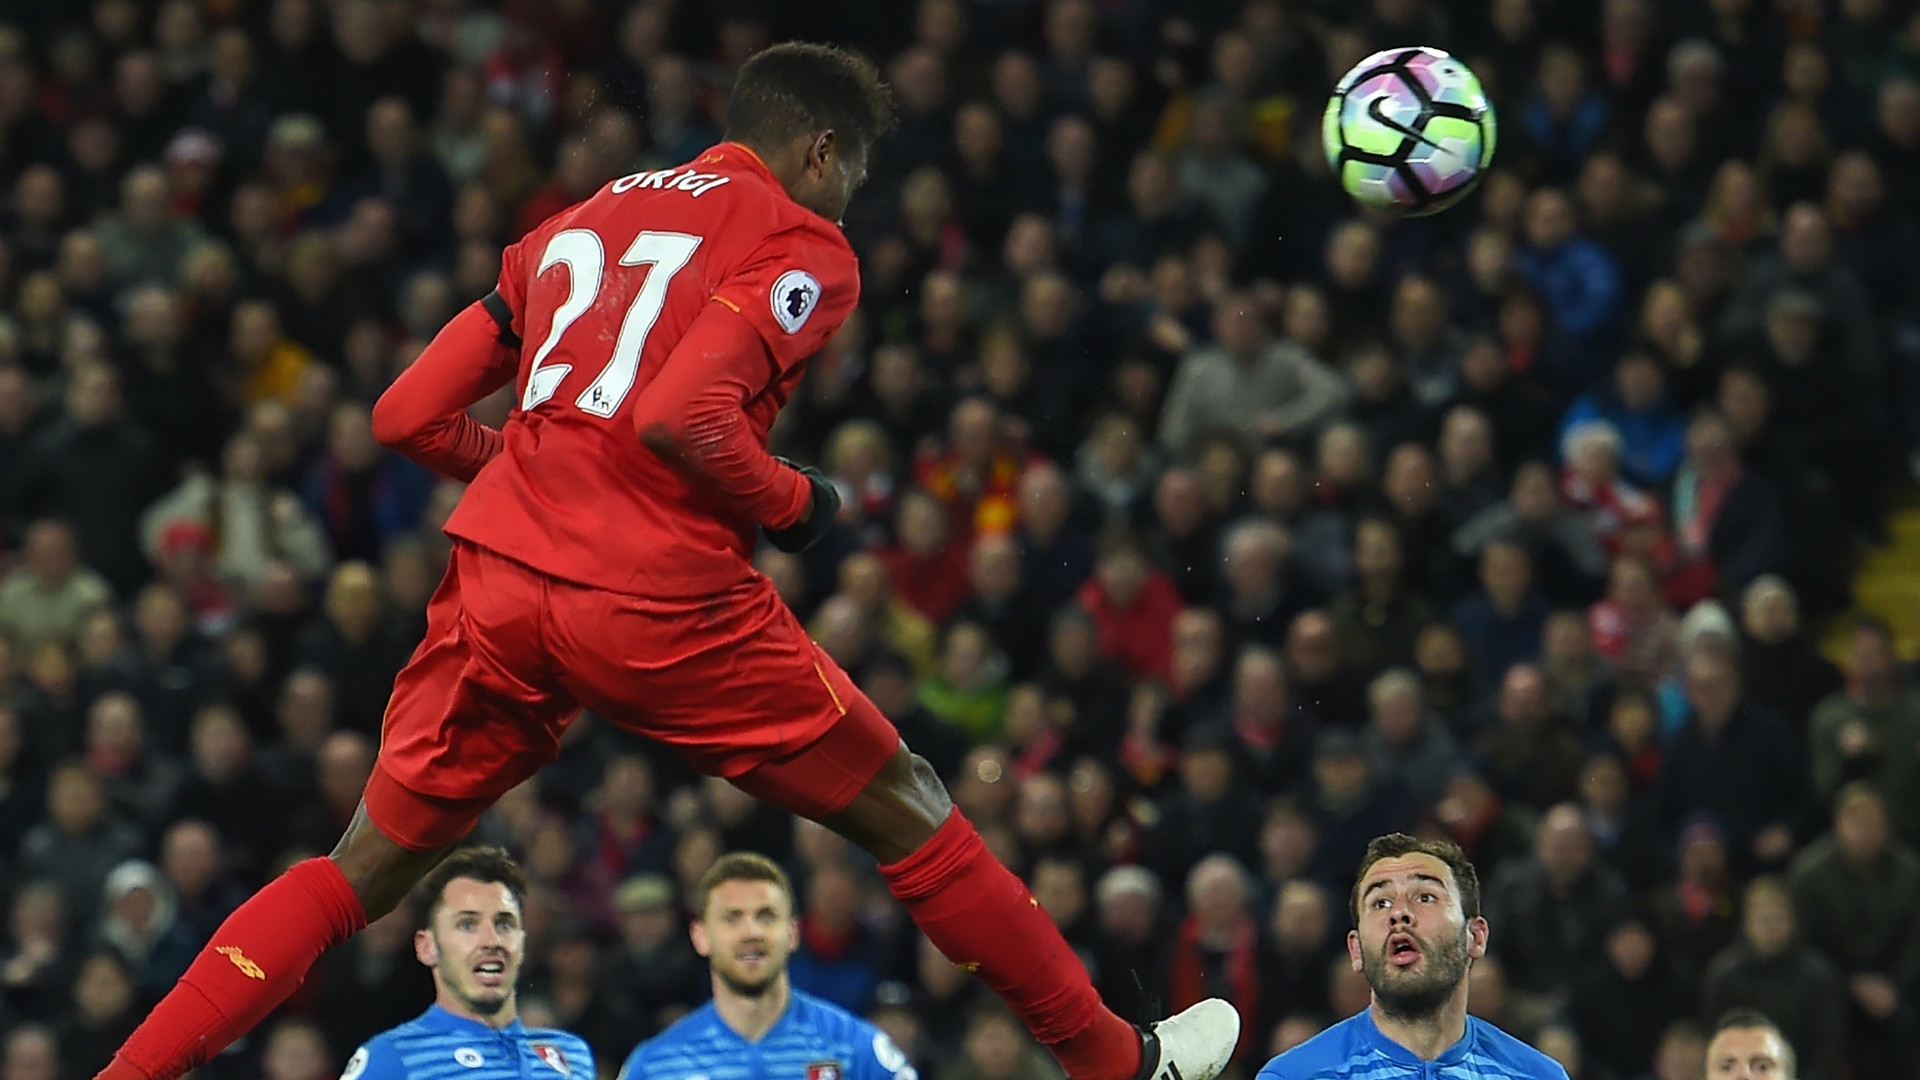 Liverpool beat West Brom 1-0, retake 3rd place in EPL